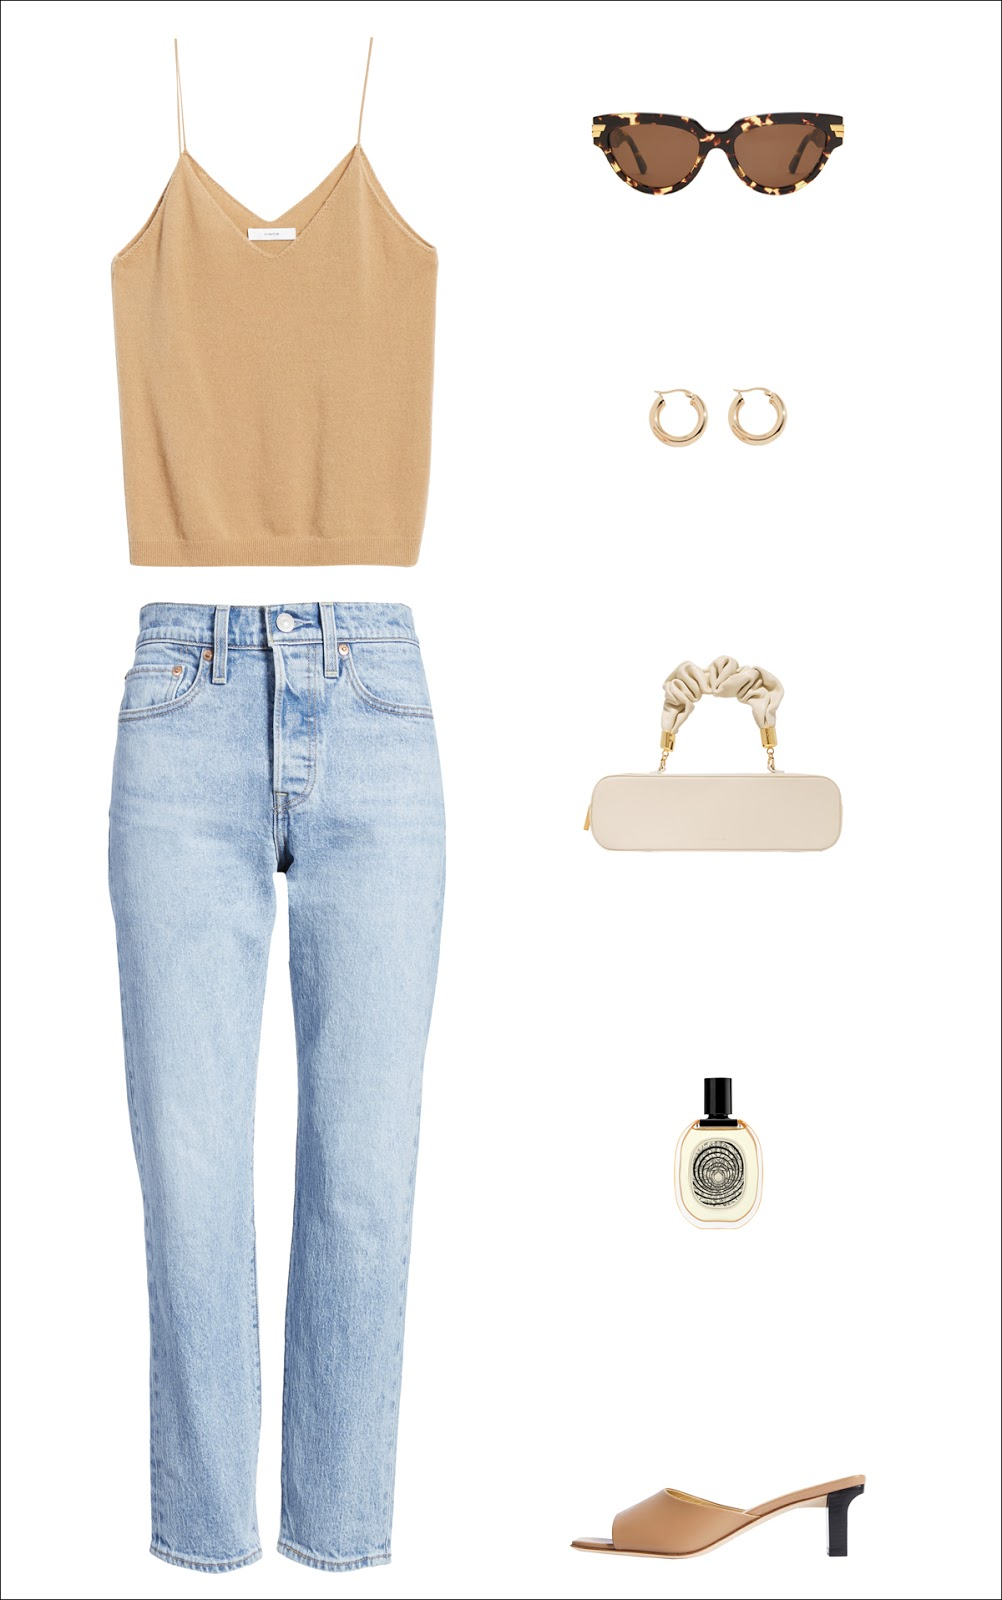 Neutral End of Summer Outfit Idea — Camel Cashmere Tank Top, Cat-Eye Sunglasses, Gold Hoop Earrings, Beige Mini Bag, Levi's Straight-Leg Jeans, Diptyque Perfume, and Tan Mule Heels